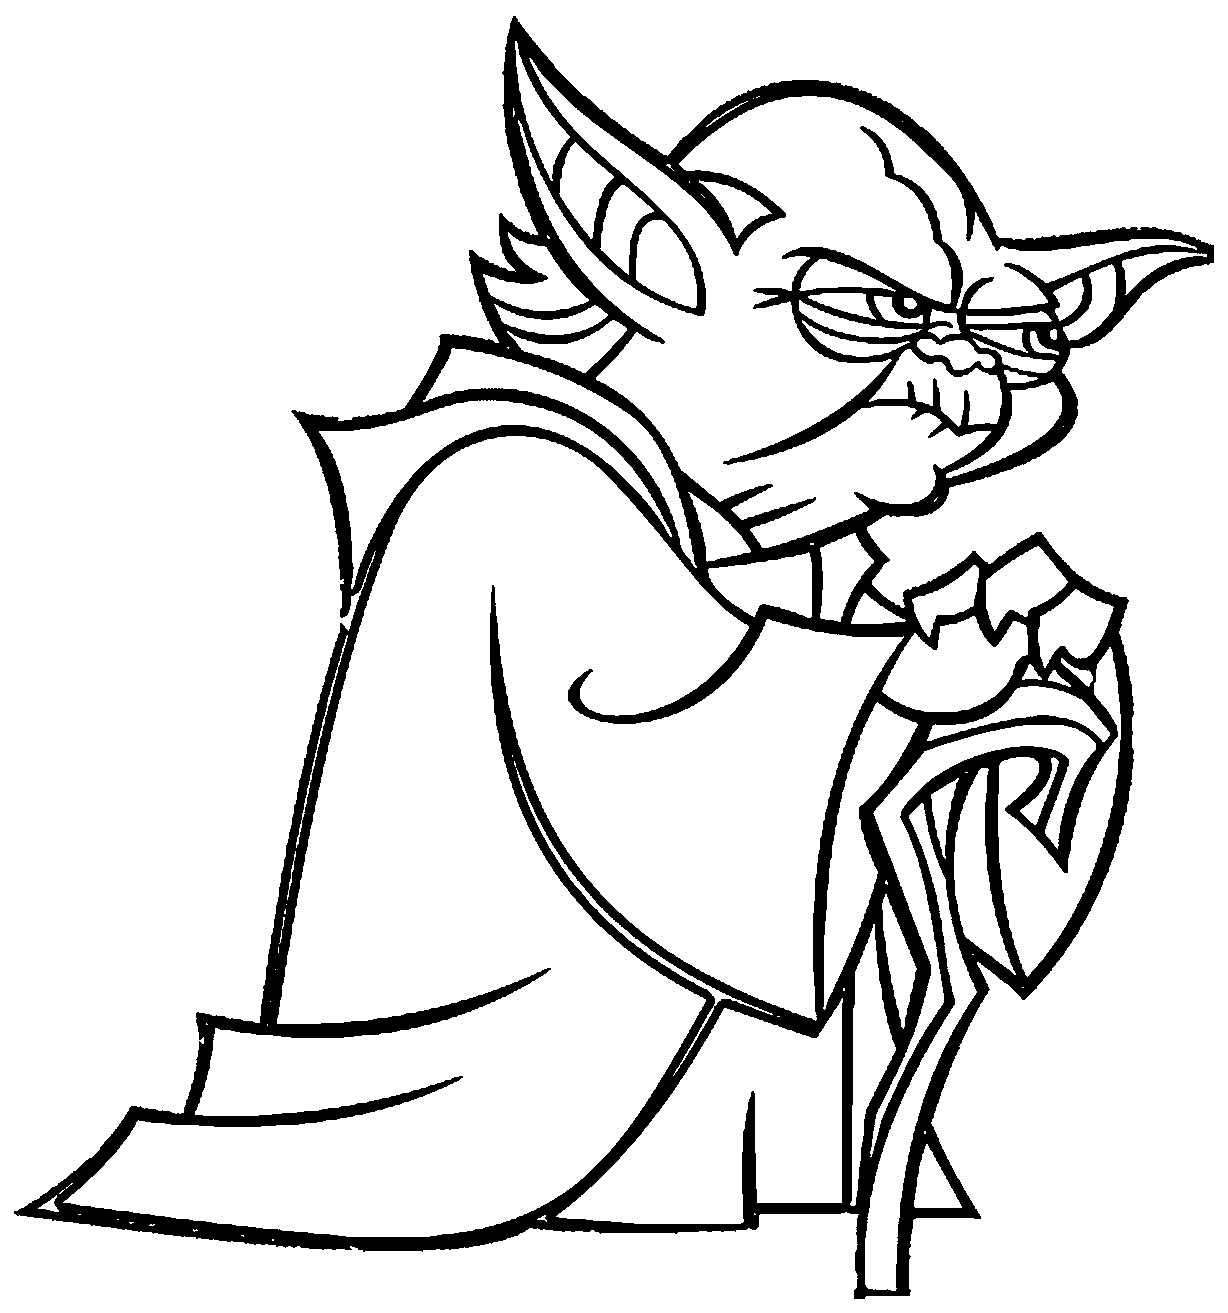 Yoda From Star Wars Free Coloring Page Kids Movies Arresting Pages Collection Of Coloring Pages Of Star Wars Free Coloring Pages Star Wars Printable